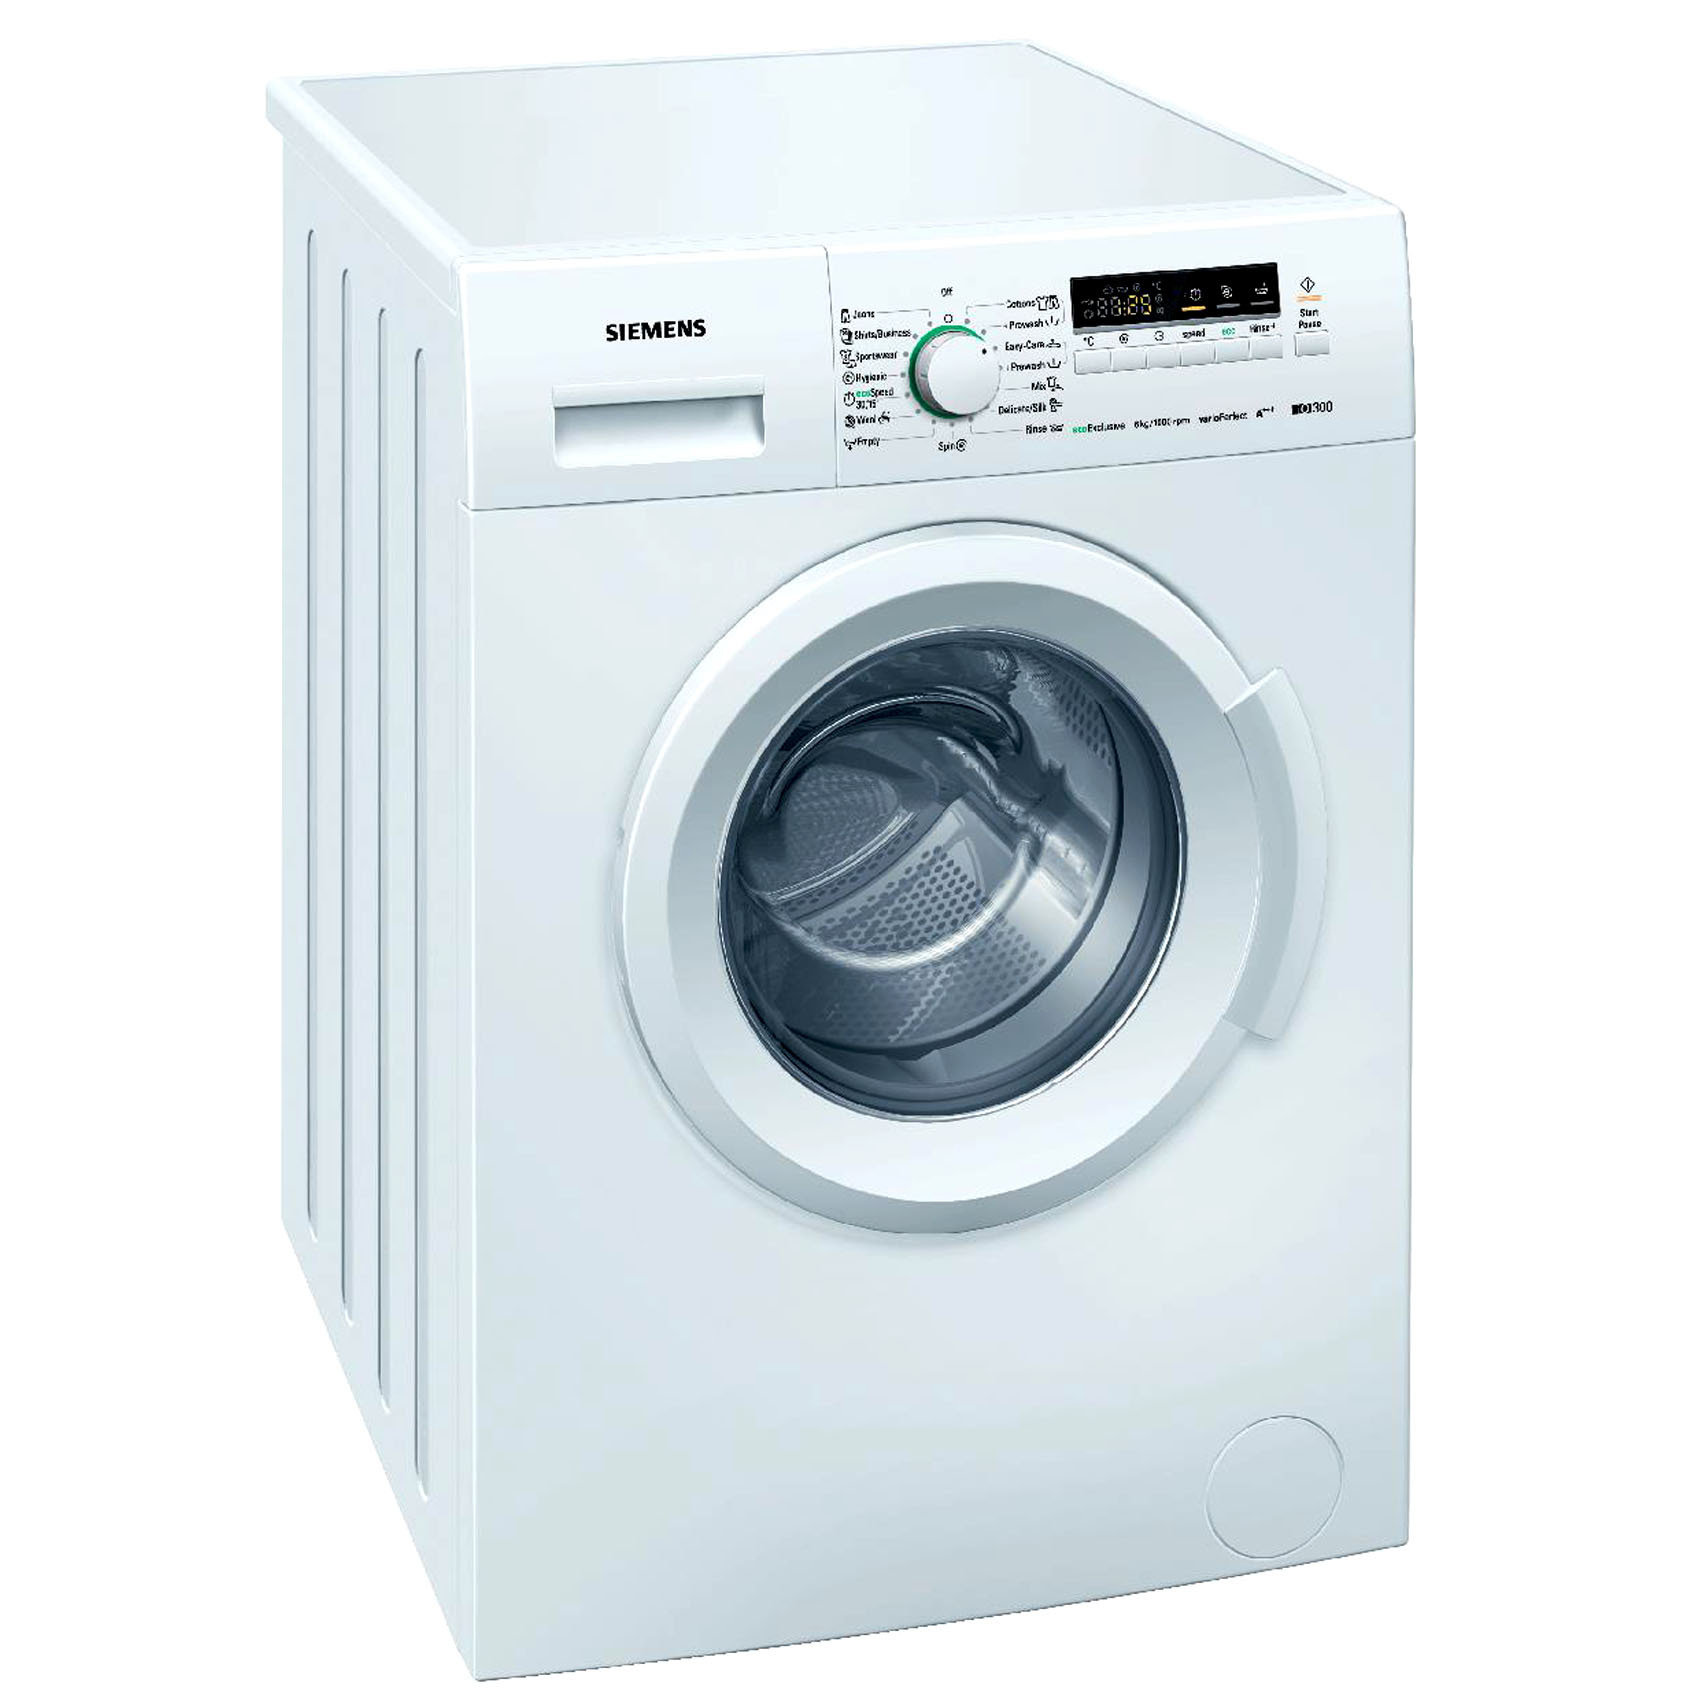 SIEMENS WASHER WM10B260GC 6KG